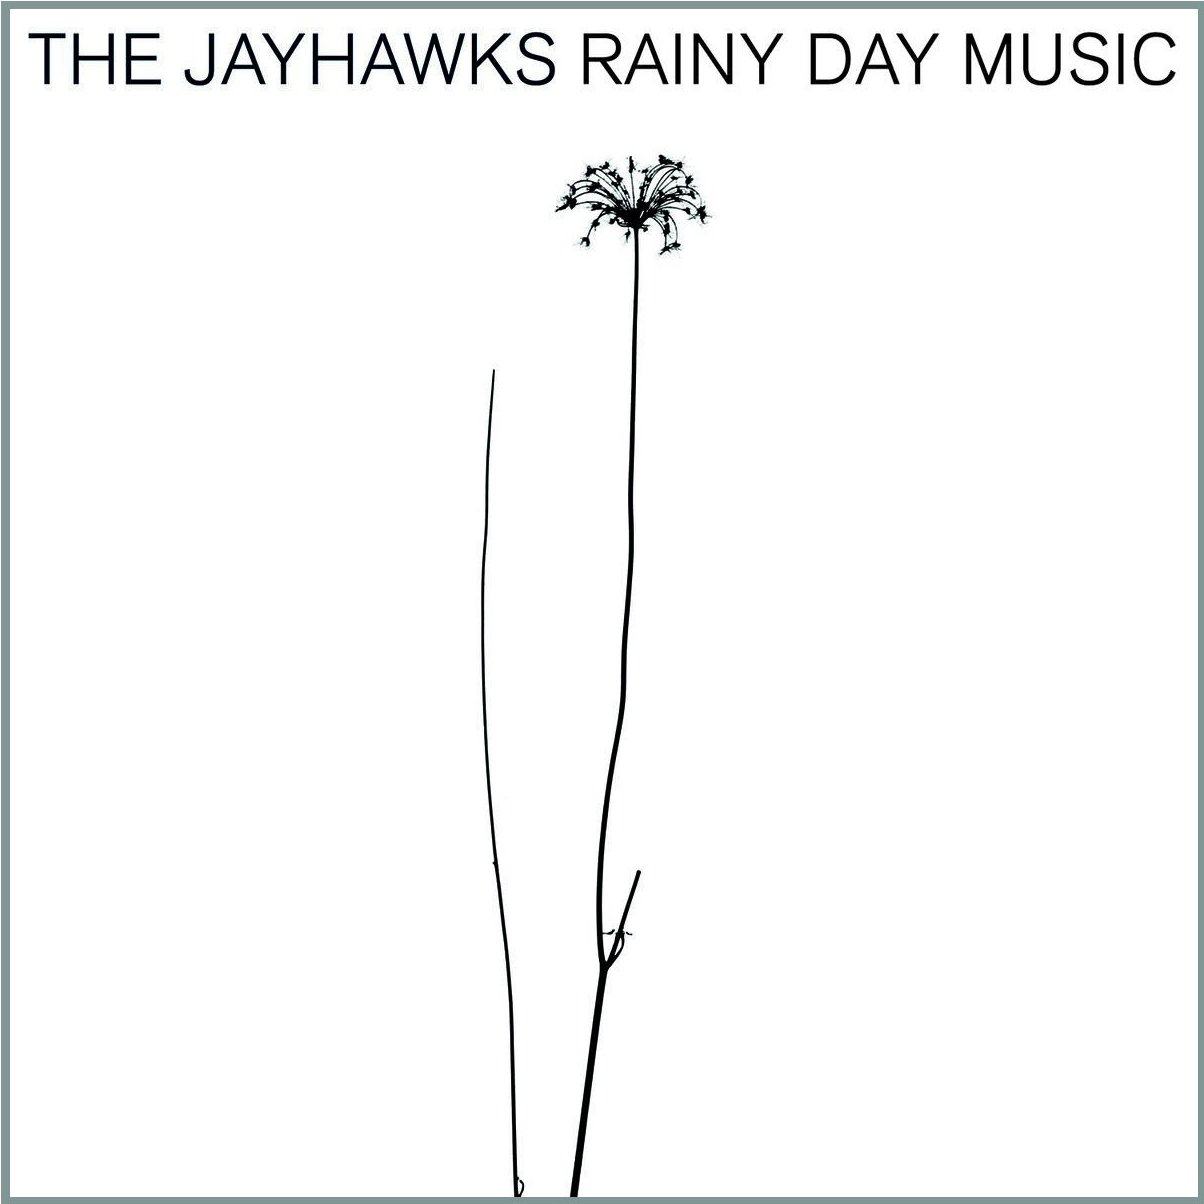 Rainy Day Music +6 : Amazon.es: Música